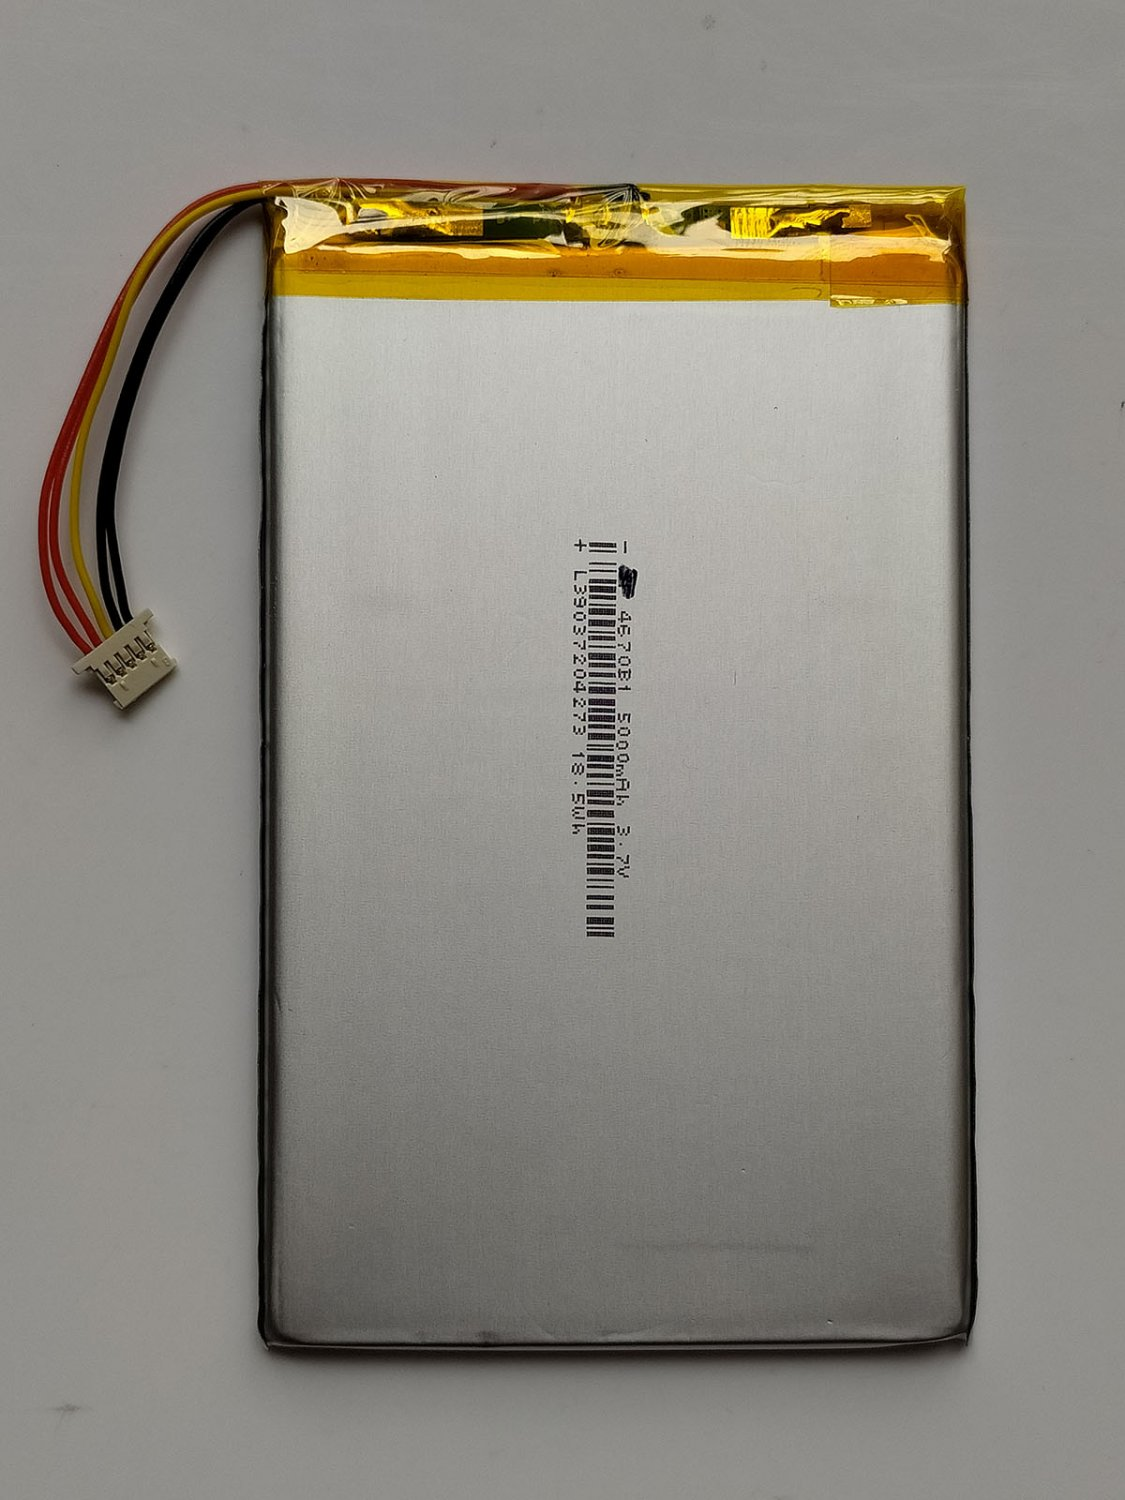 PL 5080112 Battery Replacement For Autel MaxiSys MS906 MS905 5000mAh 3.7V 18.5Wh